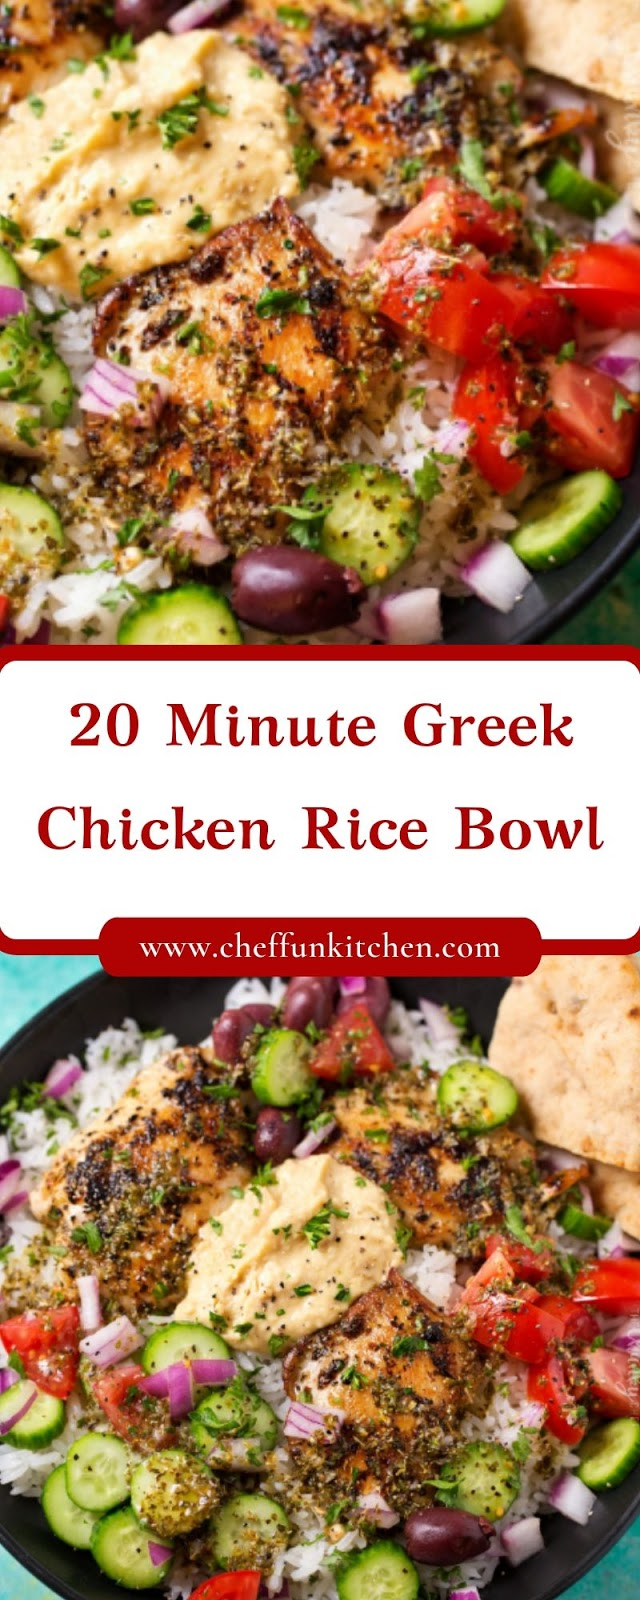 20 Minute Greek Chicken Rice Bowl